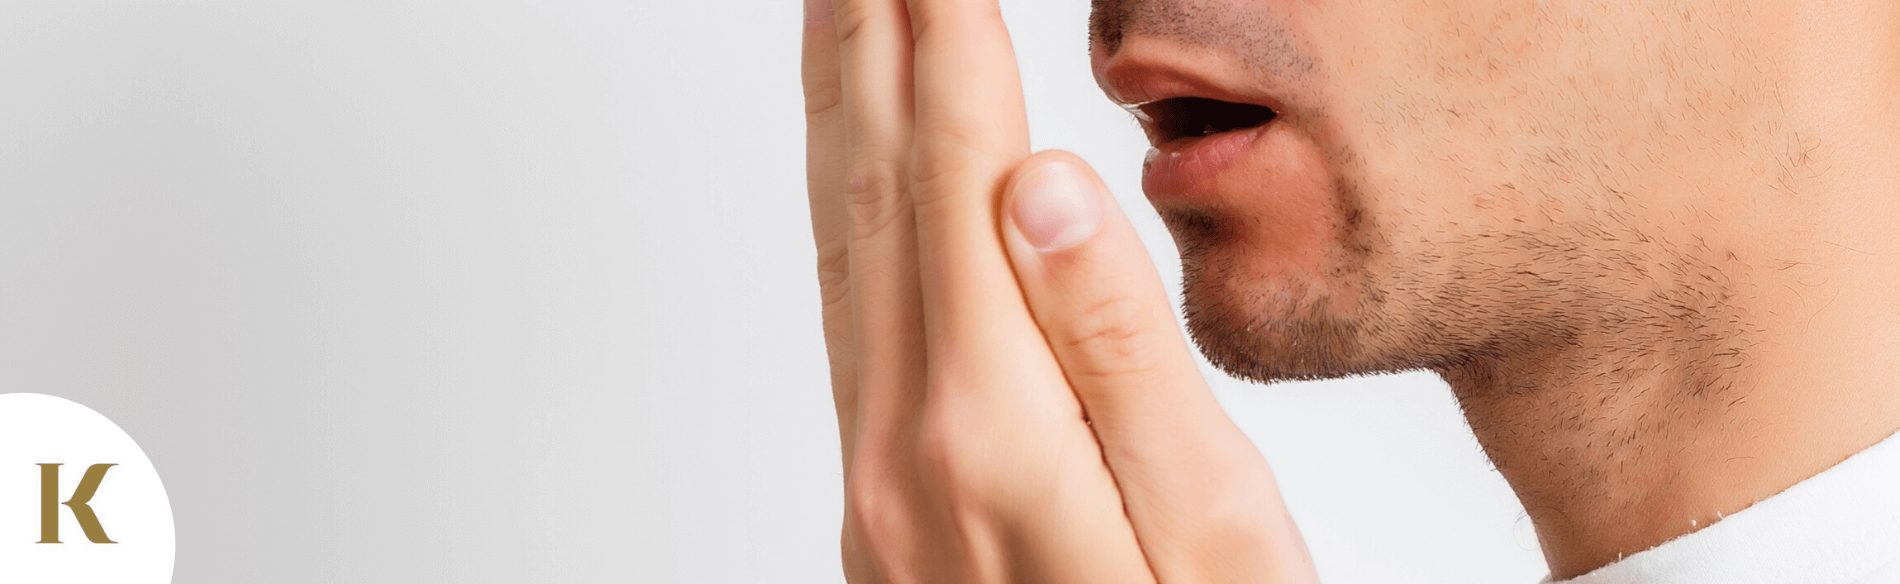 man who wants to cure bad breath